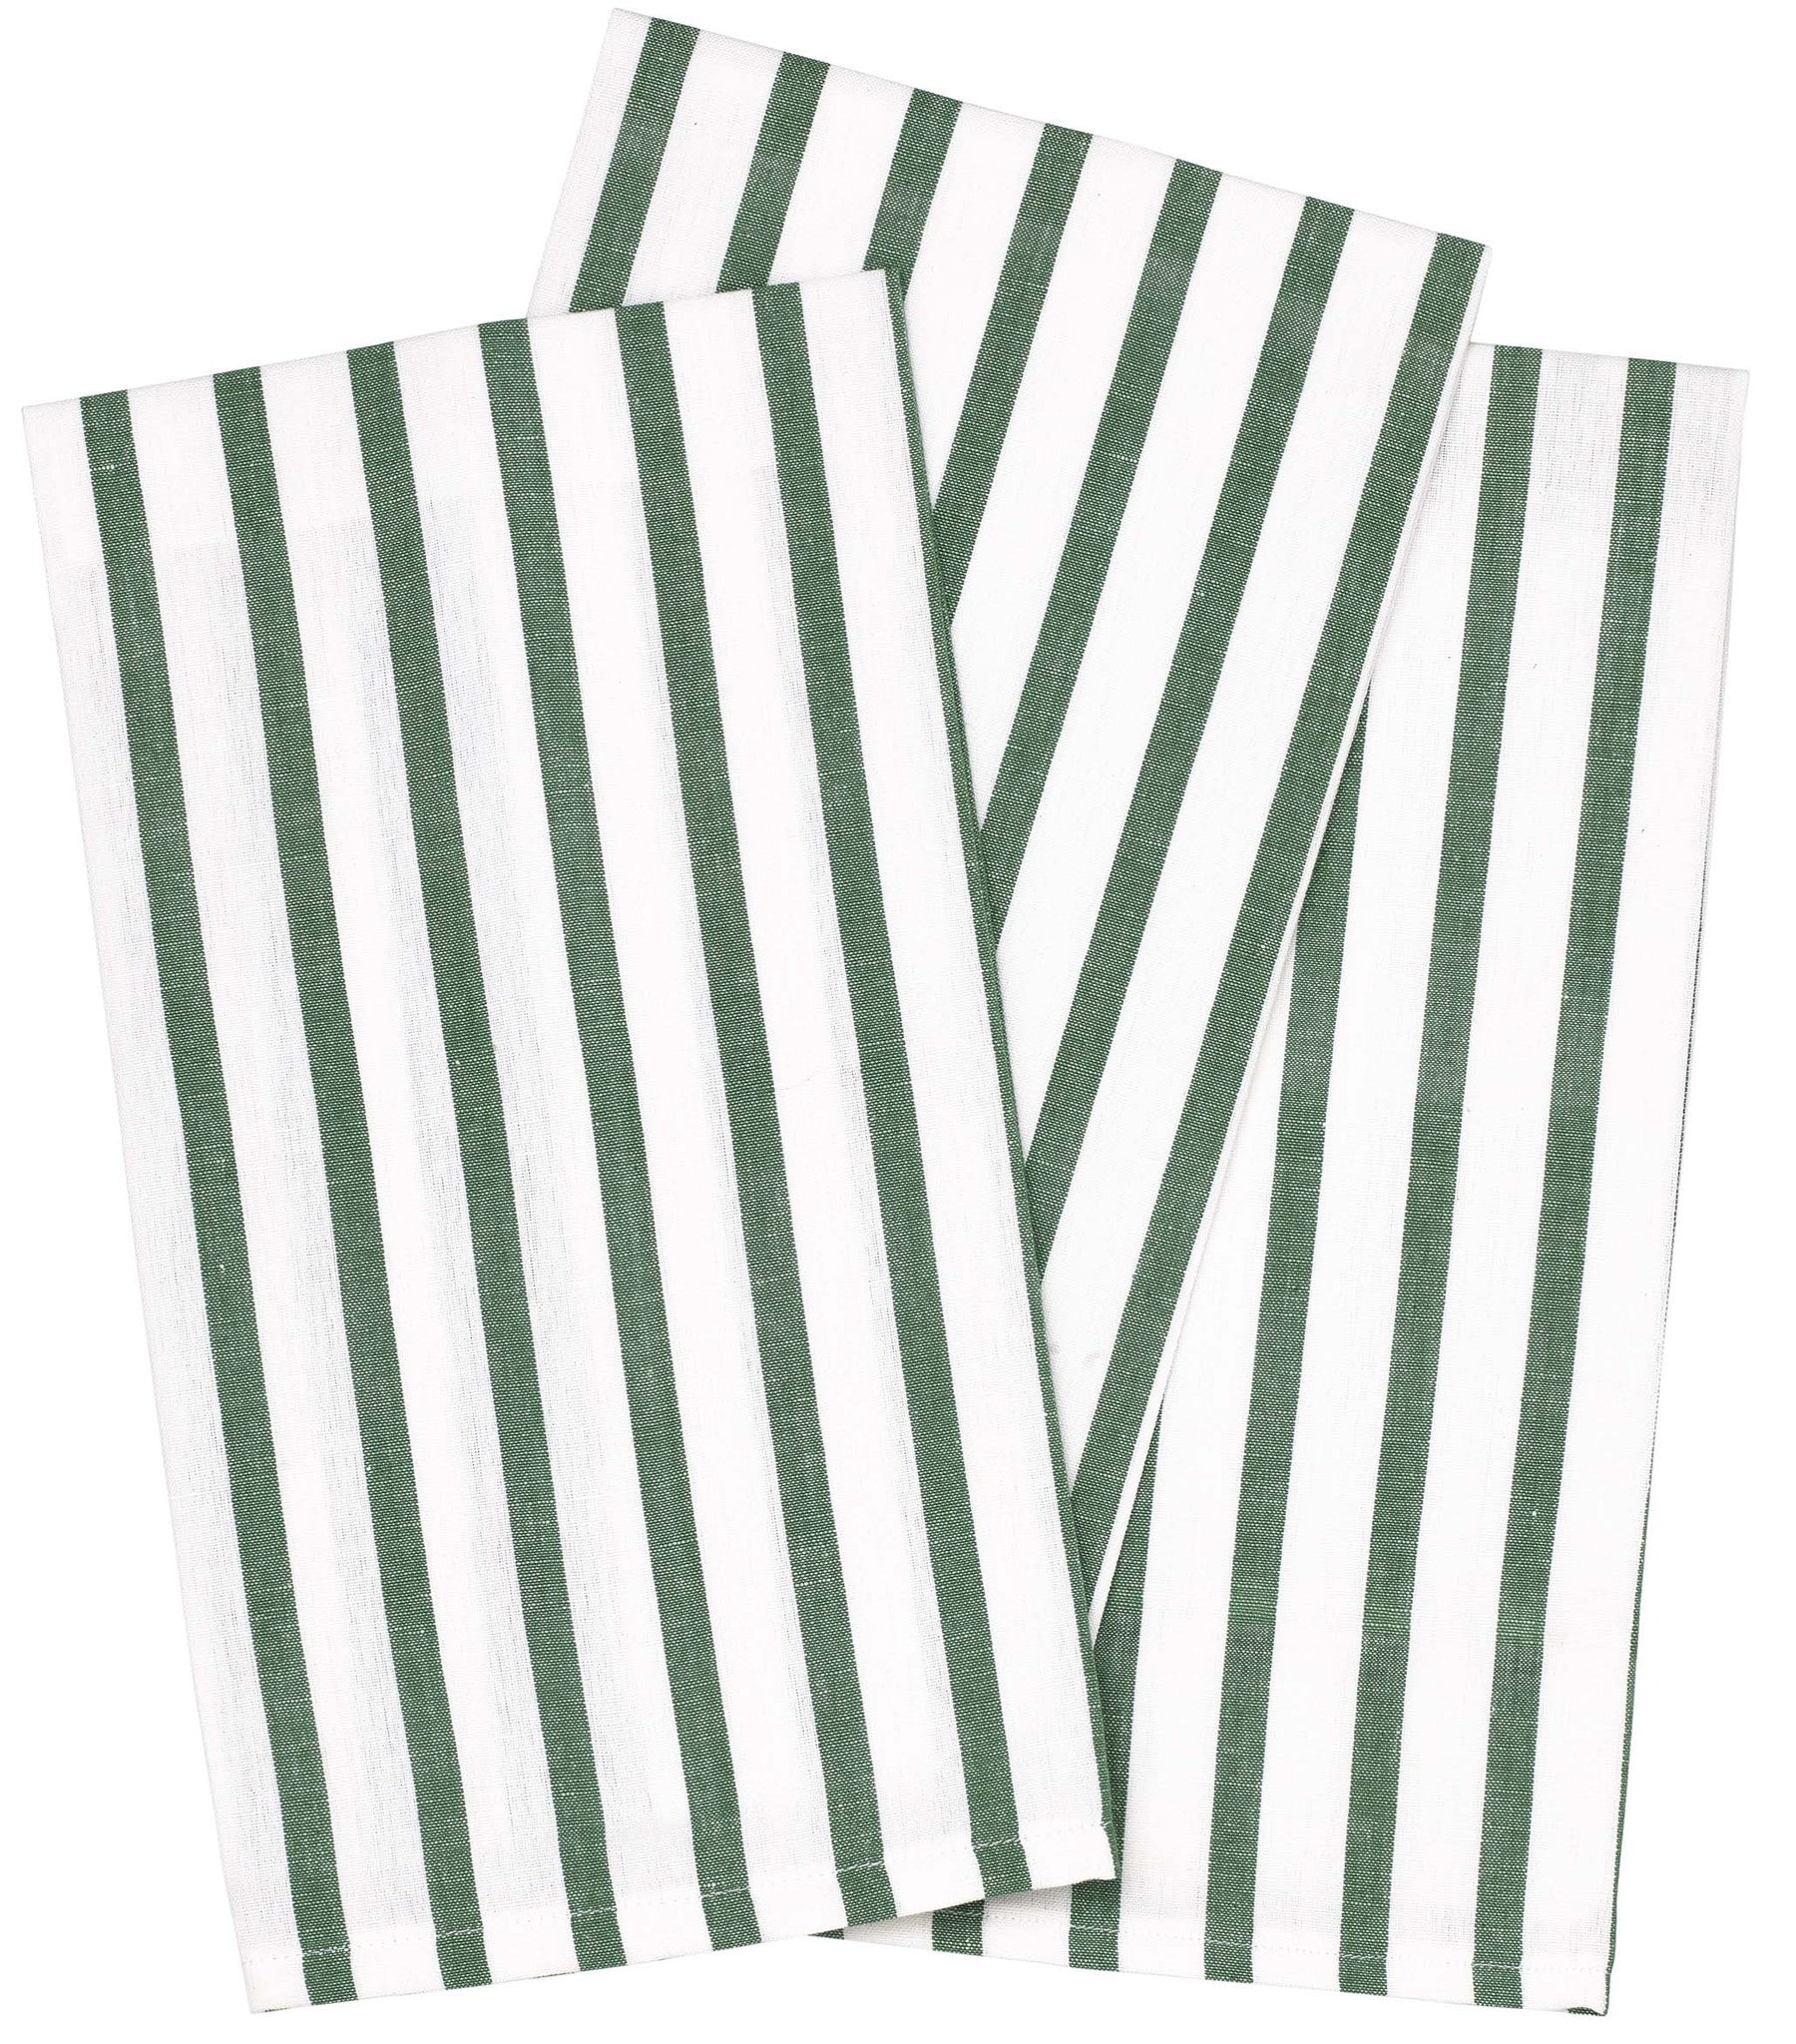 Autumn Stripe Tea Towel - Moss Green